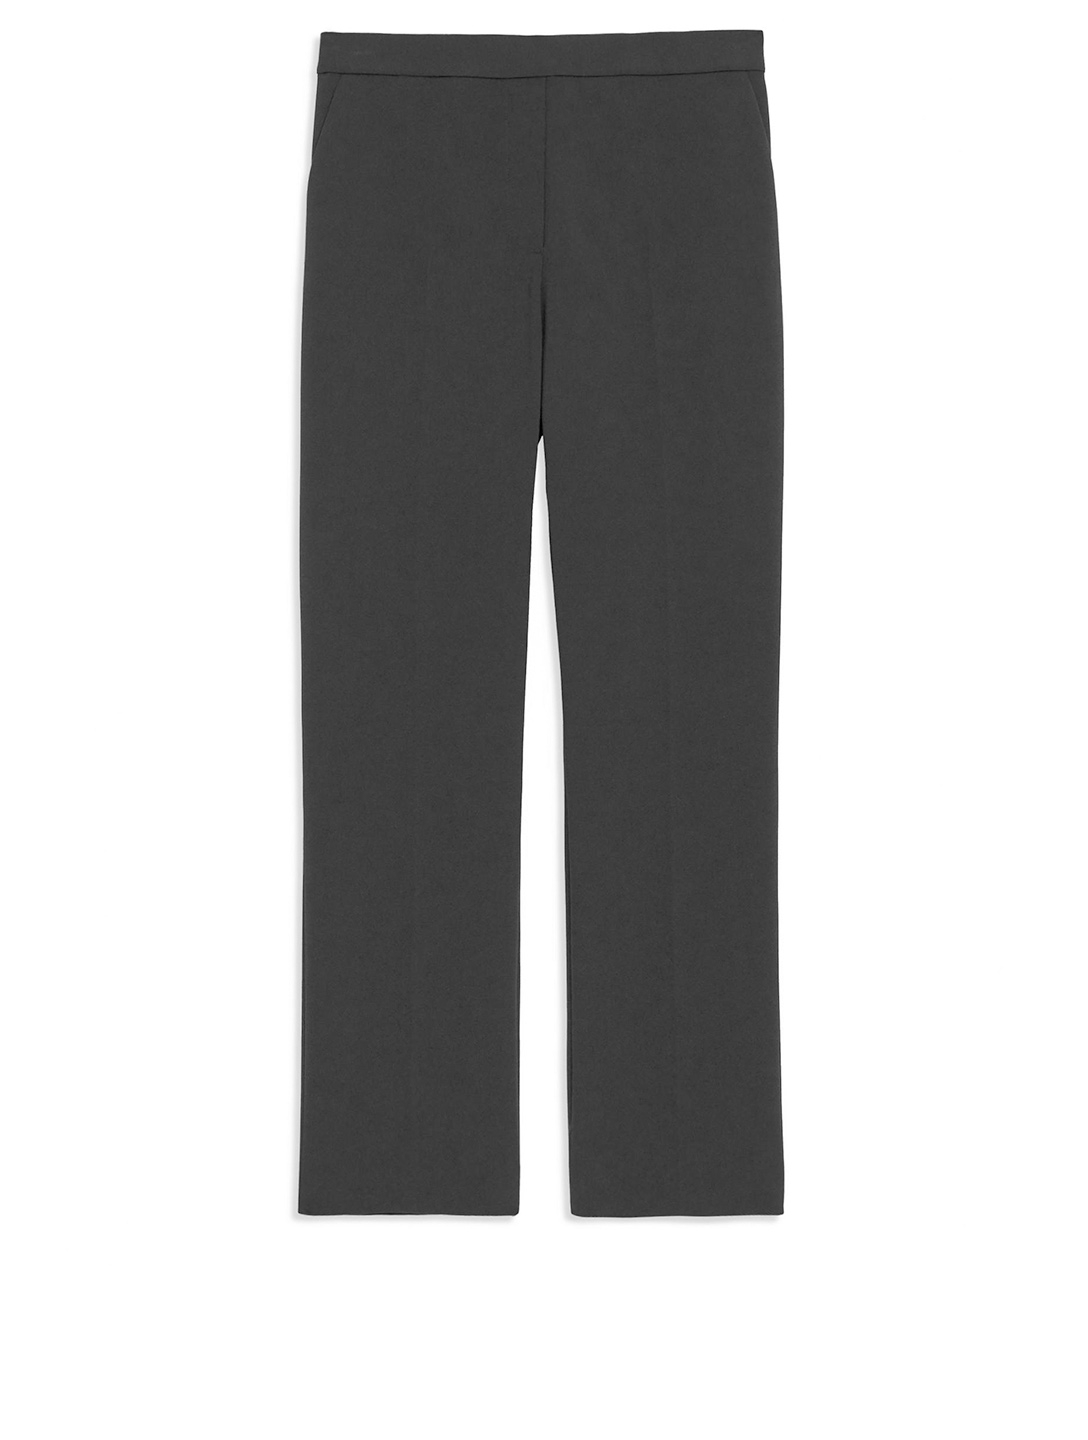 THEORY Cropped Pull-On Pants Women's Black